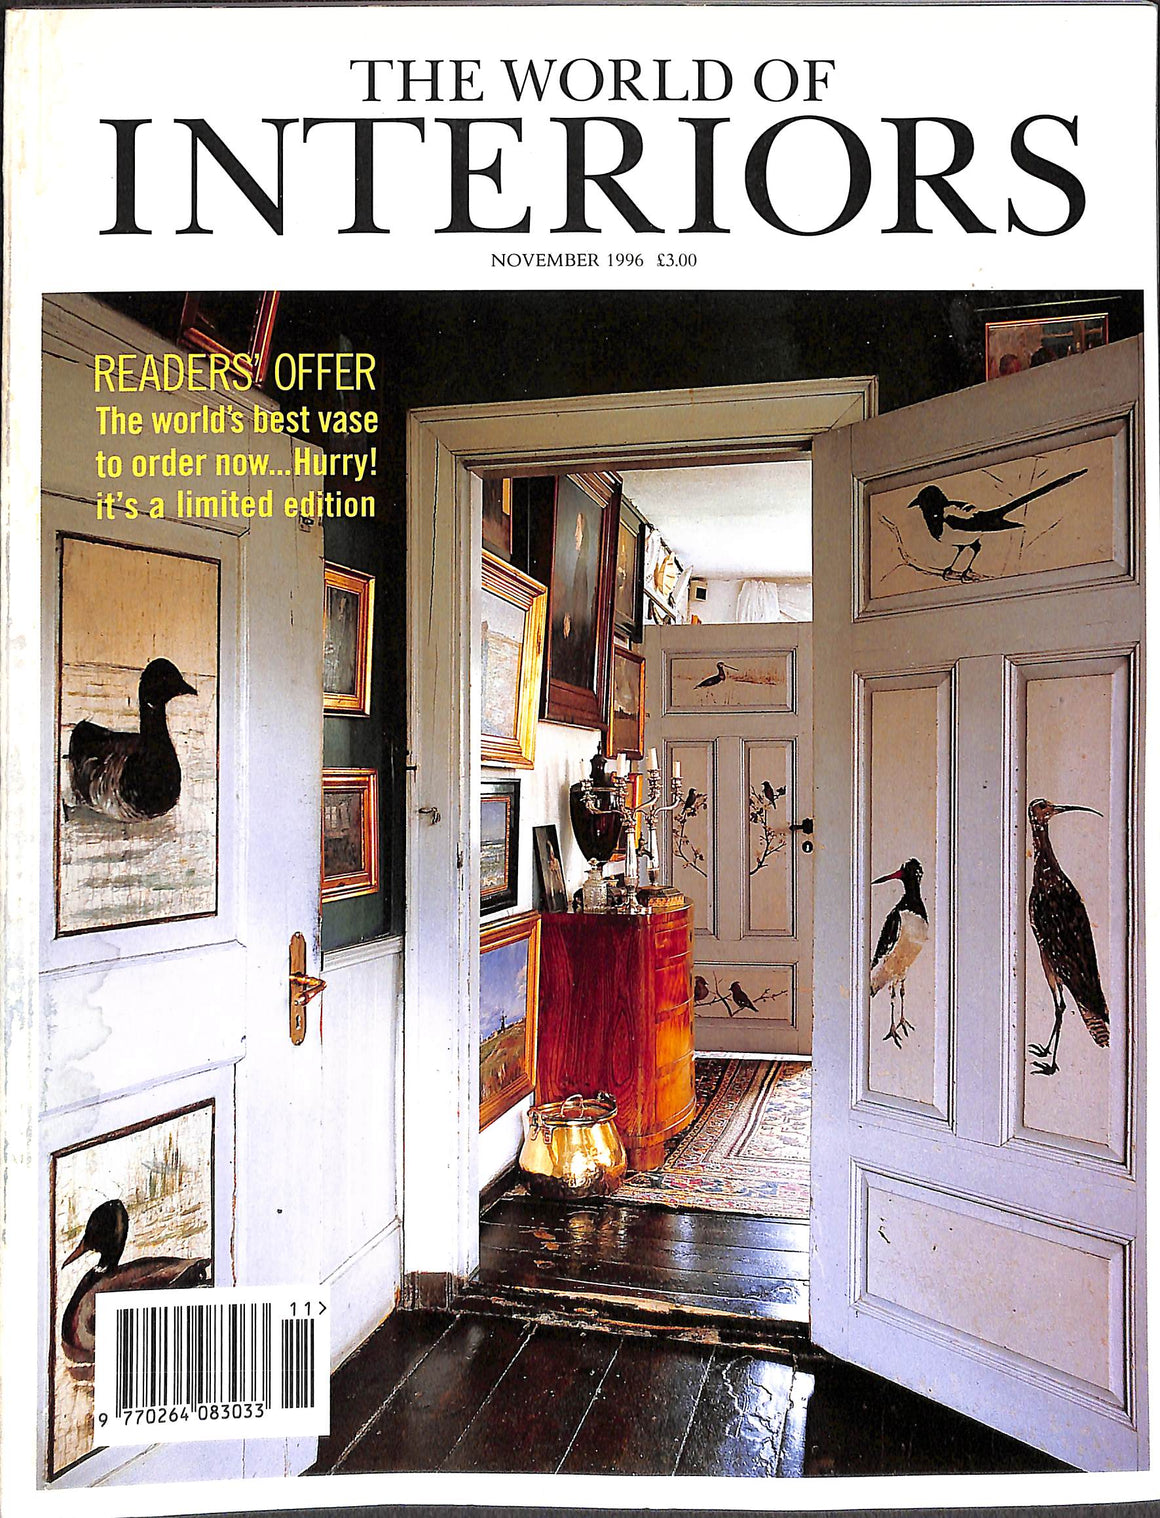 The World of Interiors: November 1996